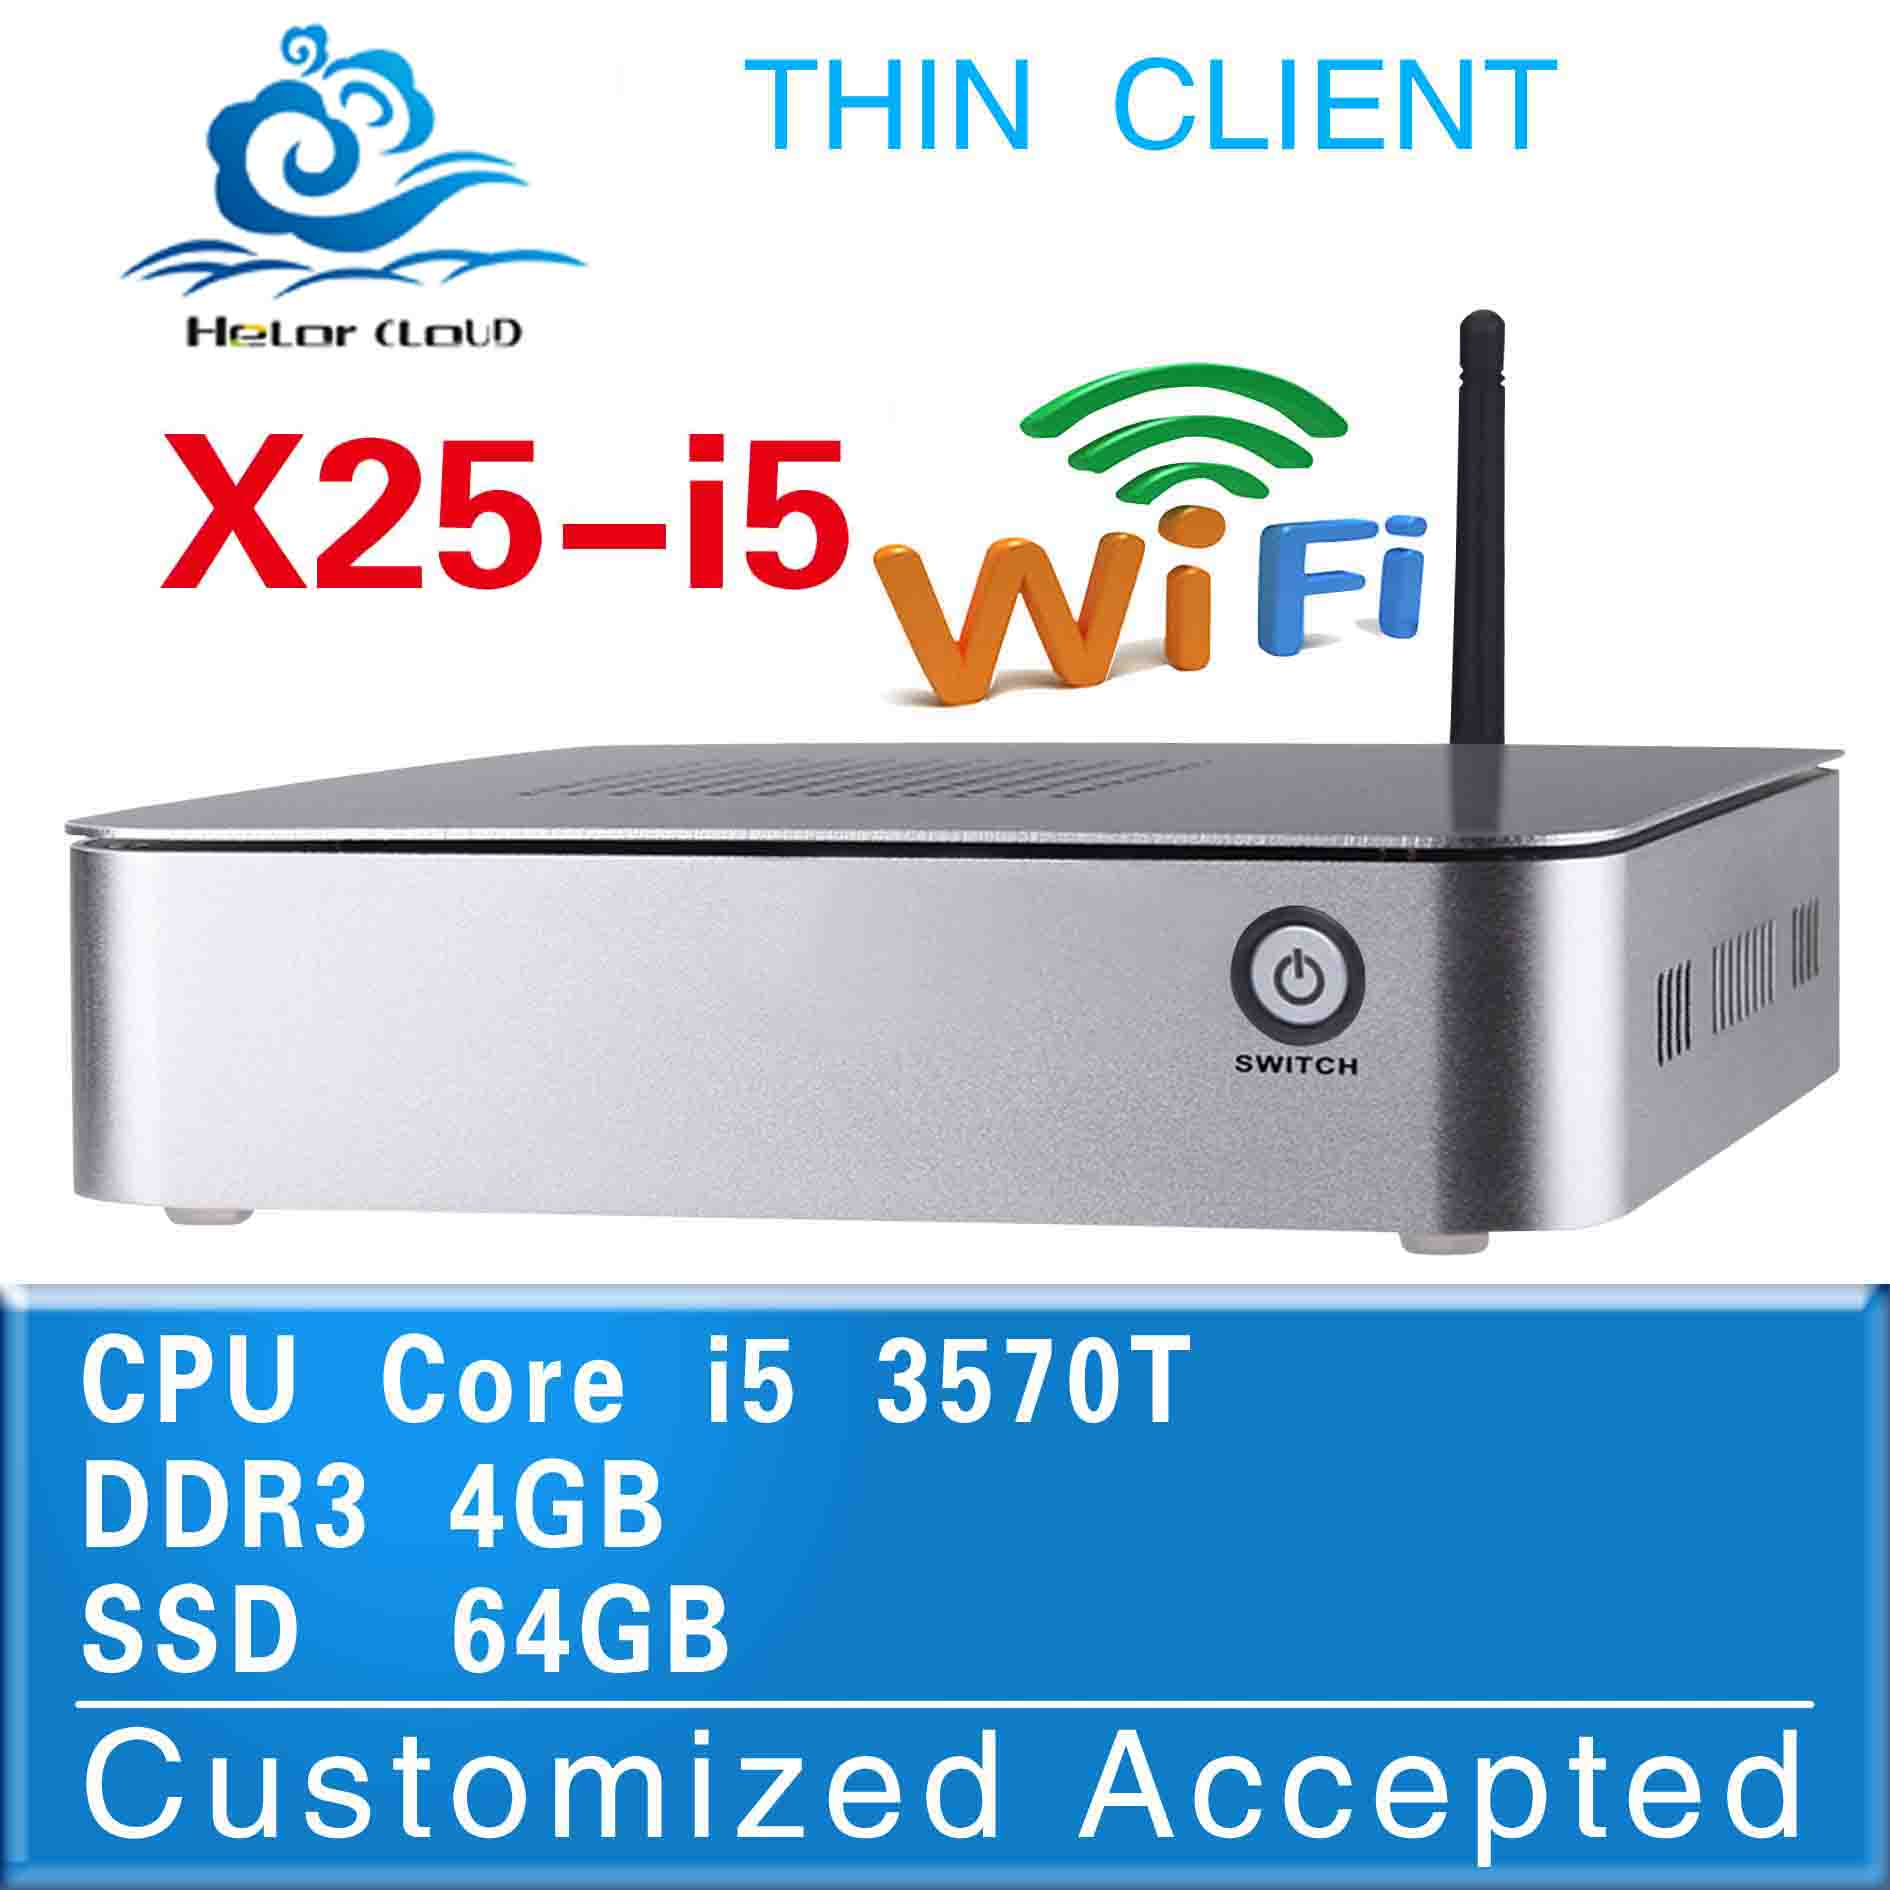 on sell fan mini pc XCY X25-i5 i5 2390T network linux embedded pc thin client 4g ram 64g ssd support wifi win7 linux windows x/p(China (Mainland))